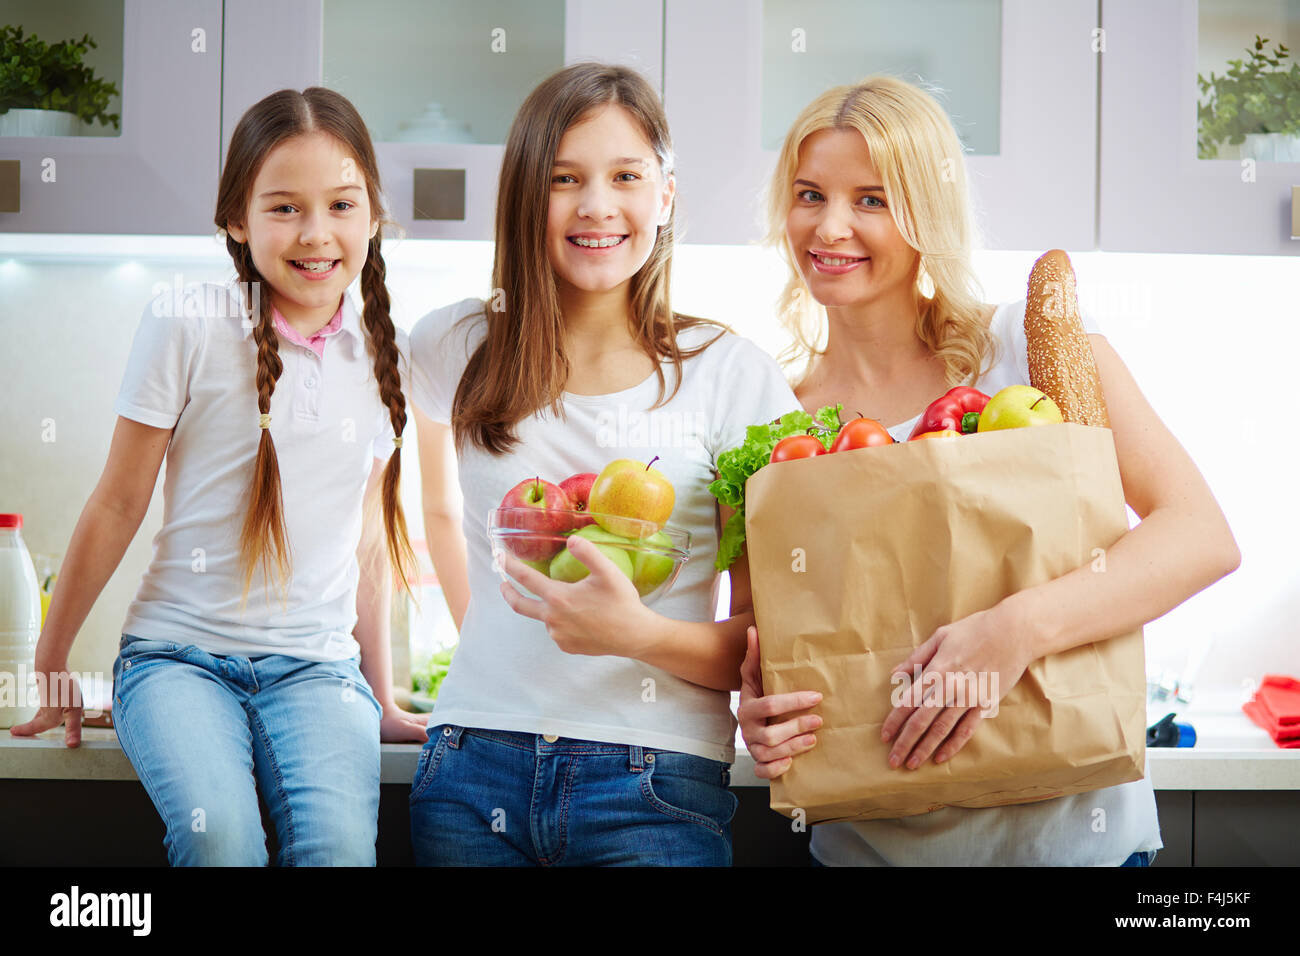 Young woman and two adolescent girls looking at camera in the kitchen - Stock Image